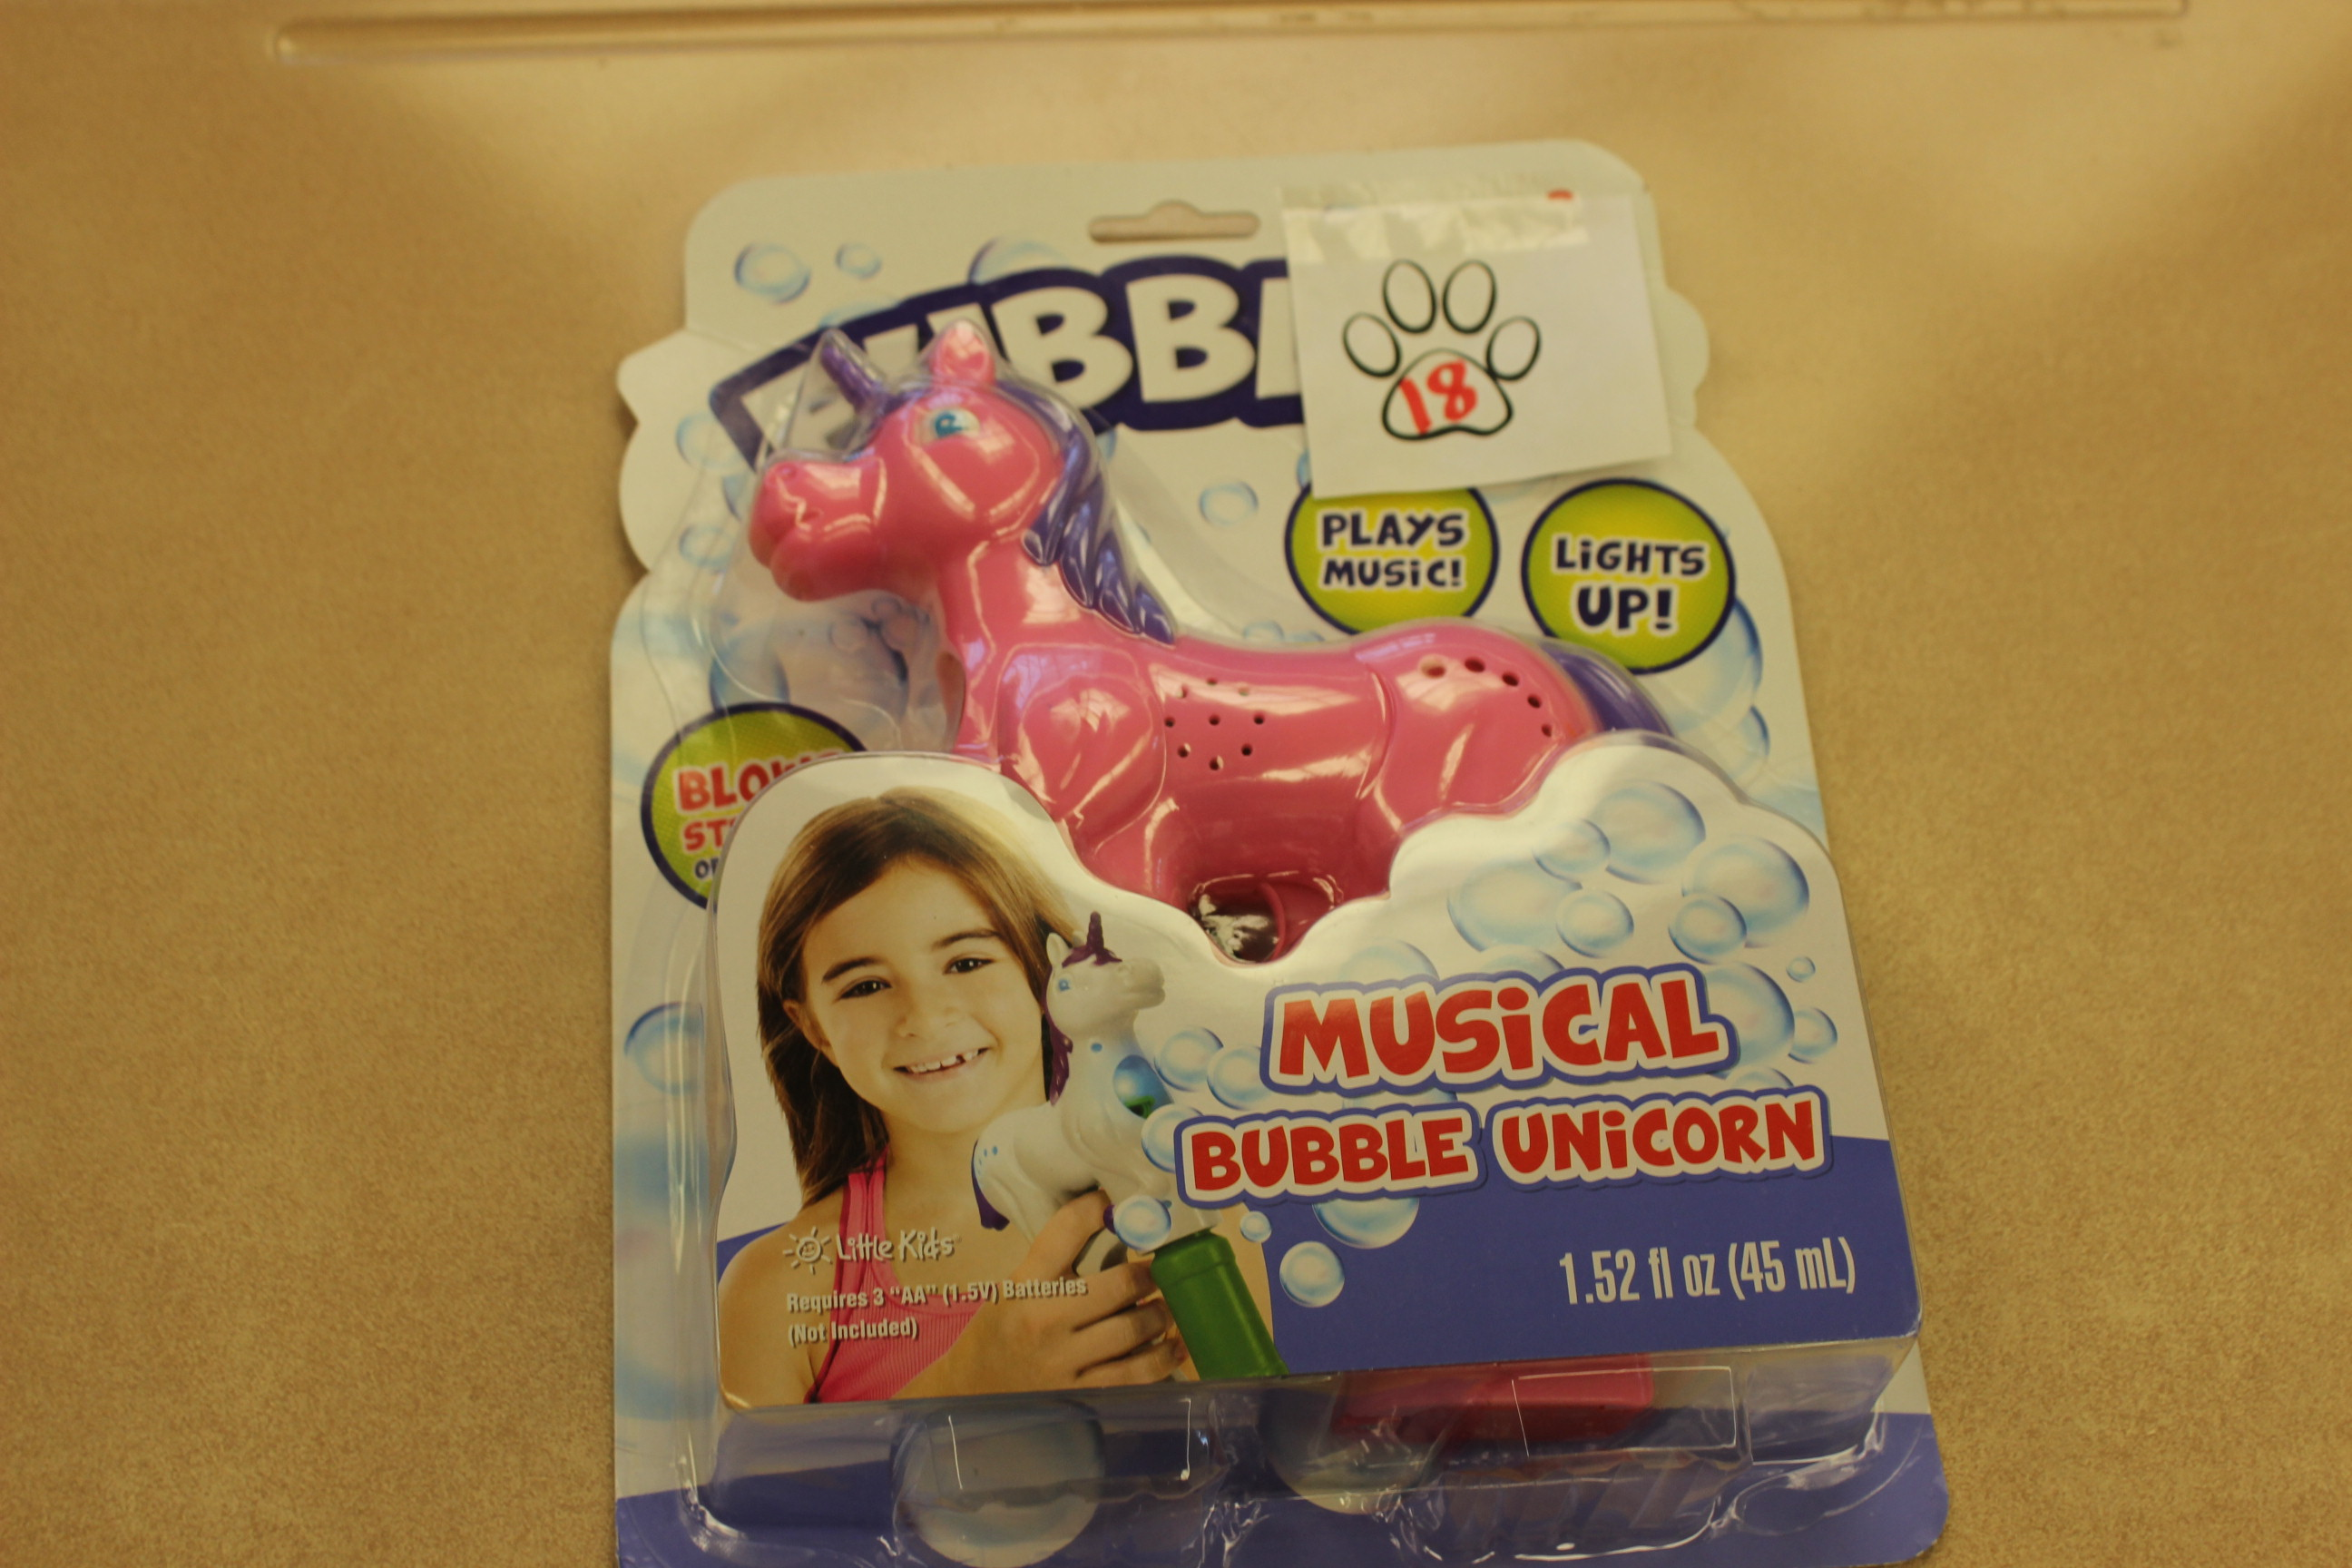 18 Paws Musical Bubble Unicorn